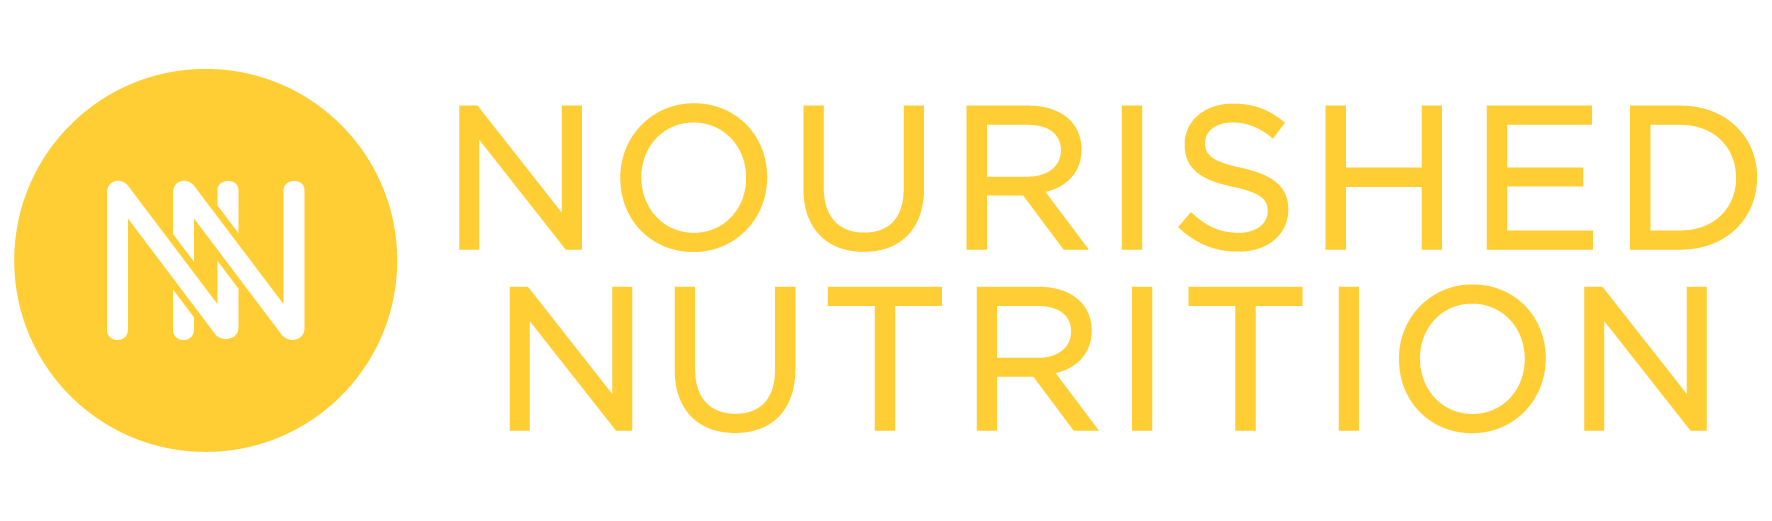 Nourished Nutrition